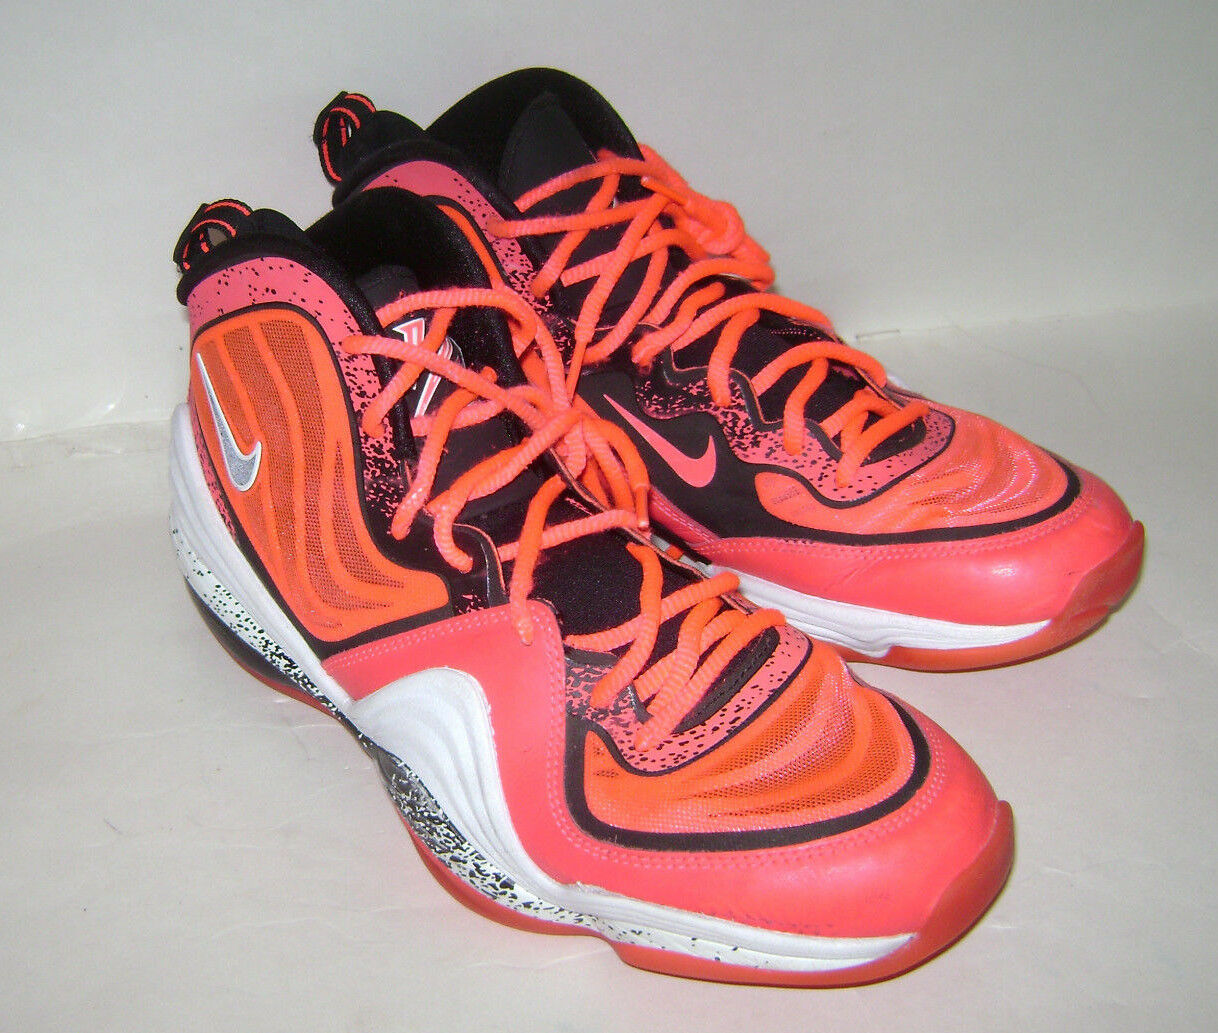 reputable site d3f80 6df4f ... Nike Air Penny V Five 5 628570-601 Size Atomic Red Mens Basketball Shoes  Size ...